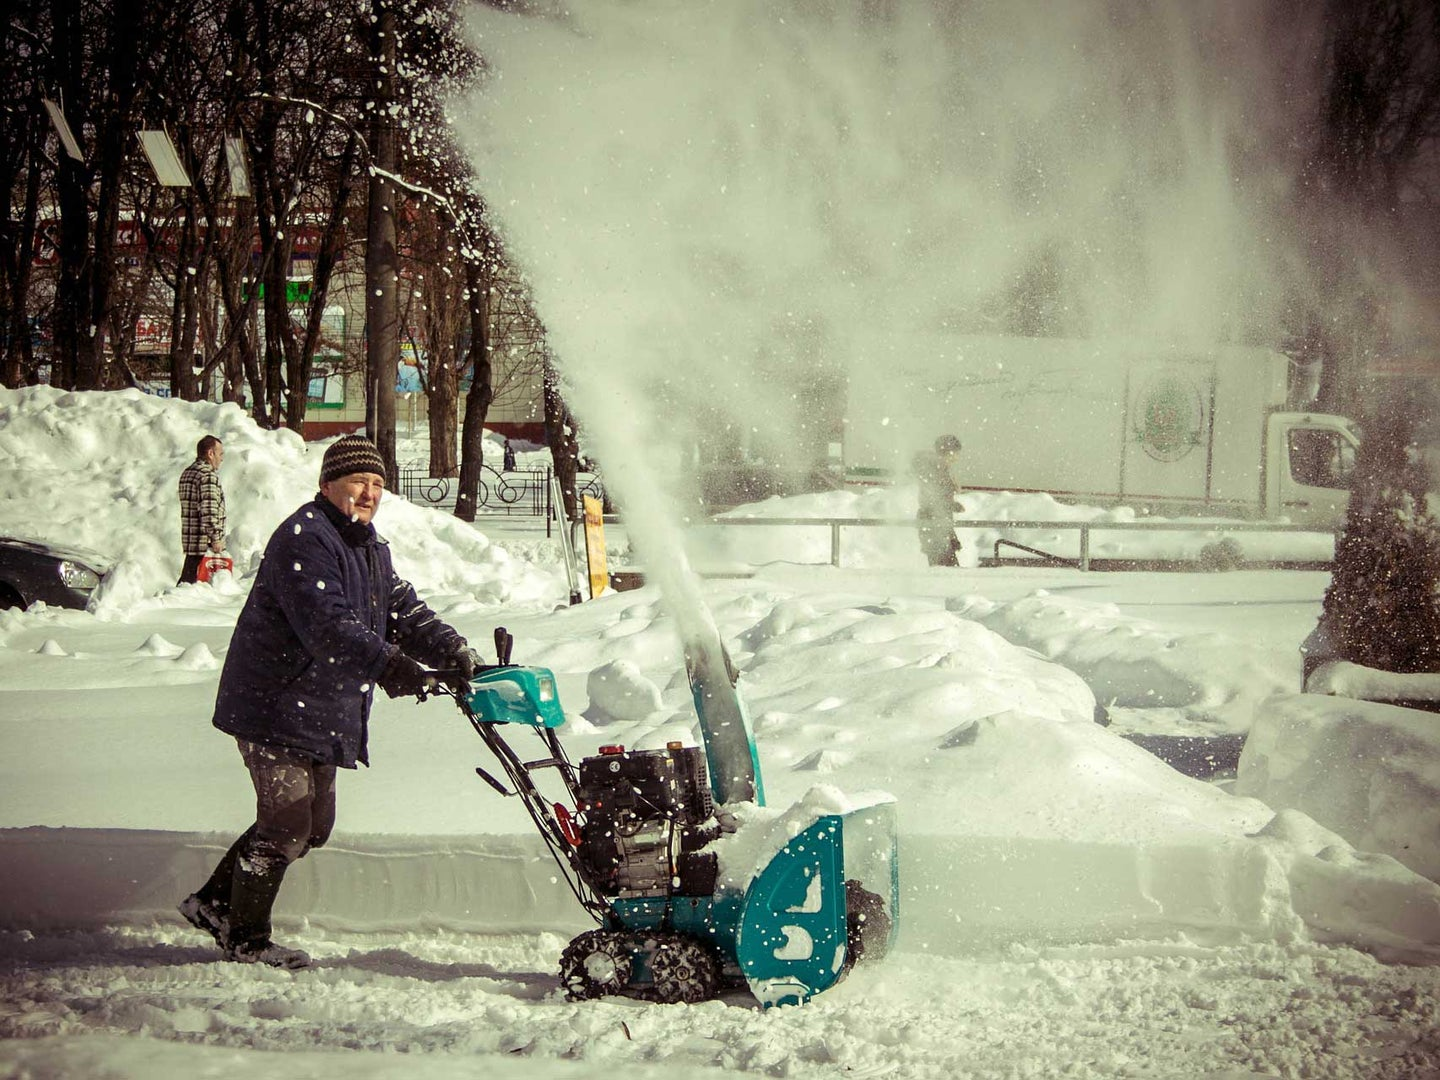 Man clearing snow with the best snow blower